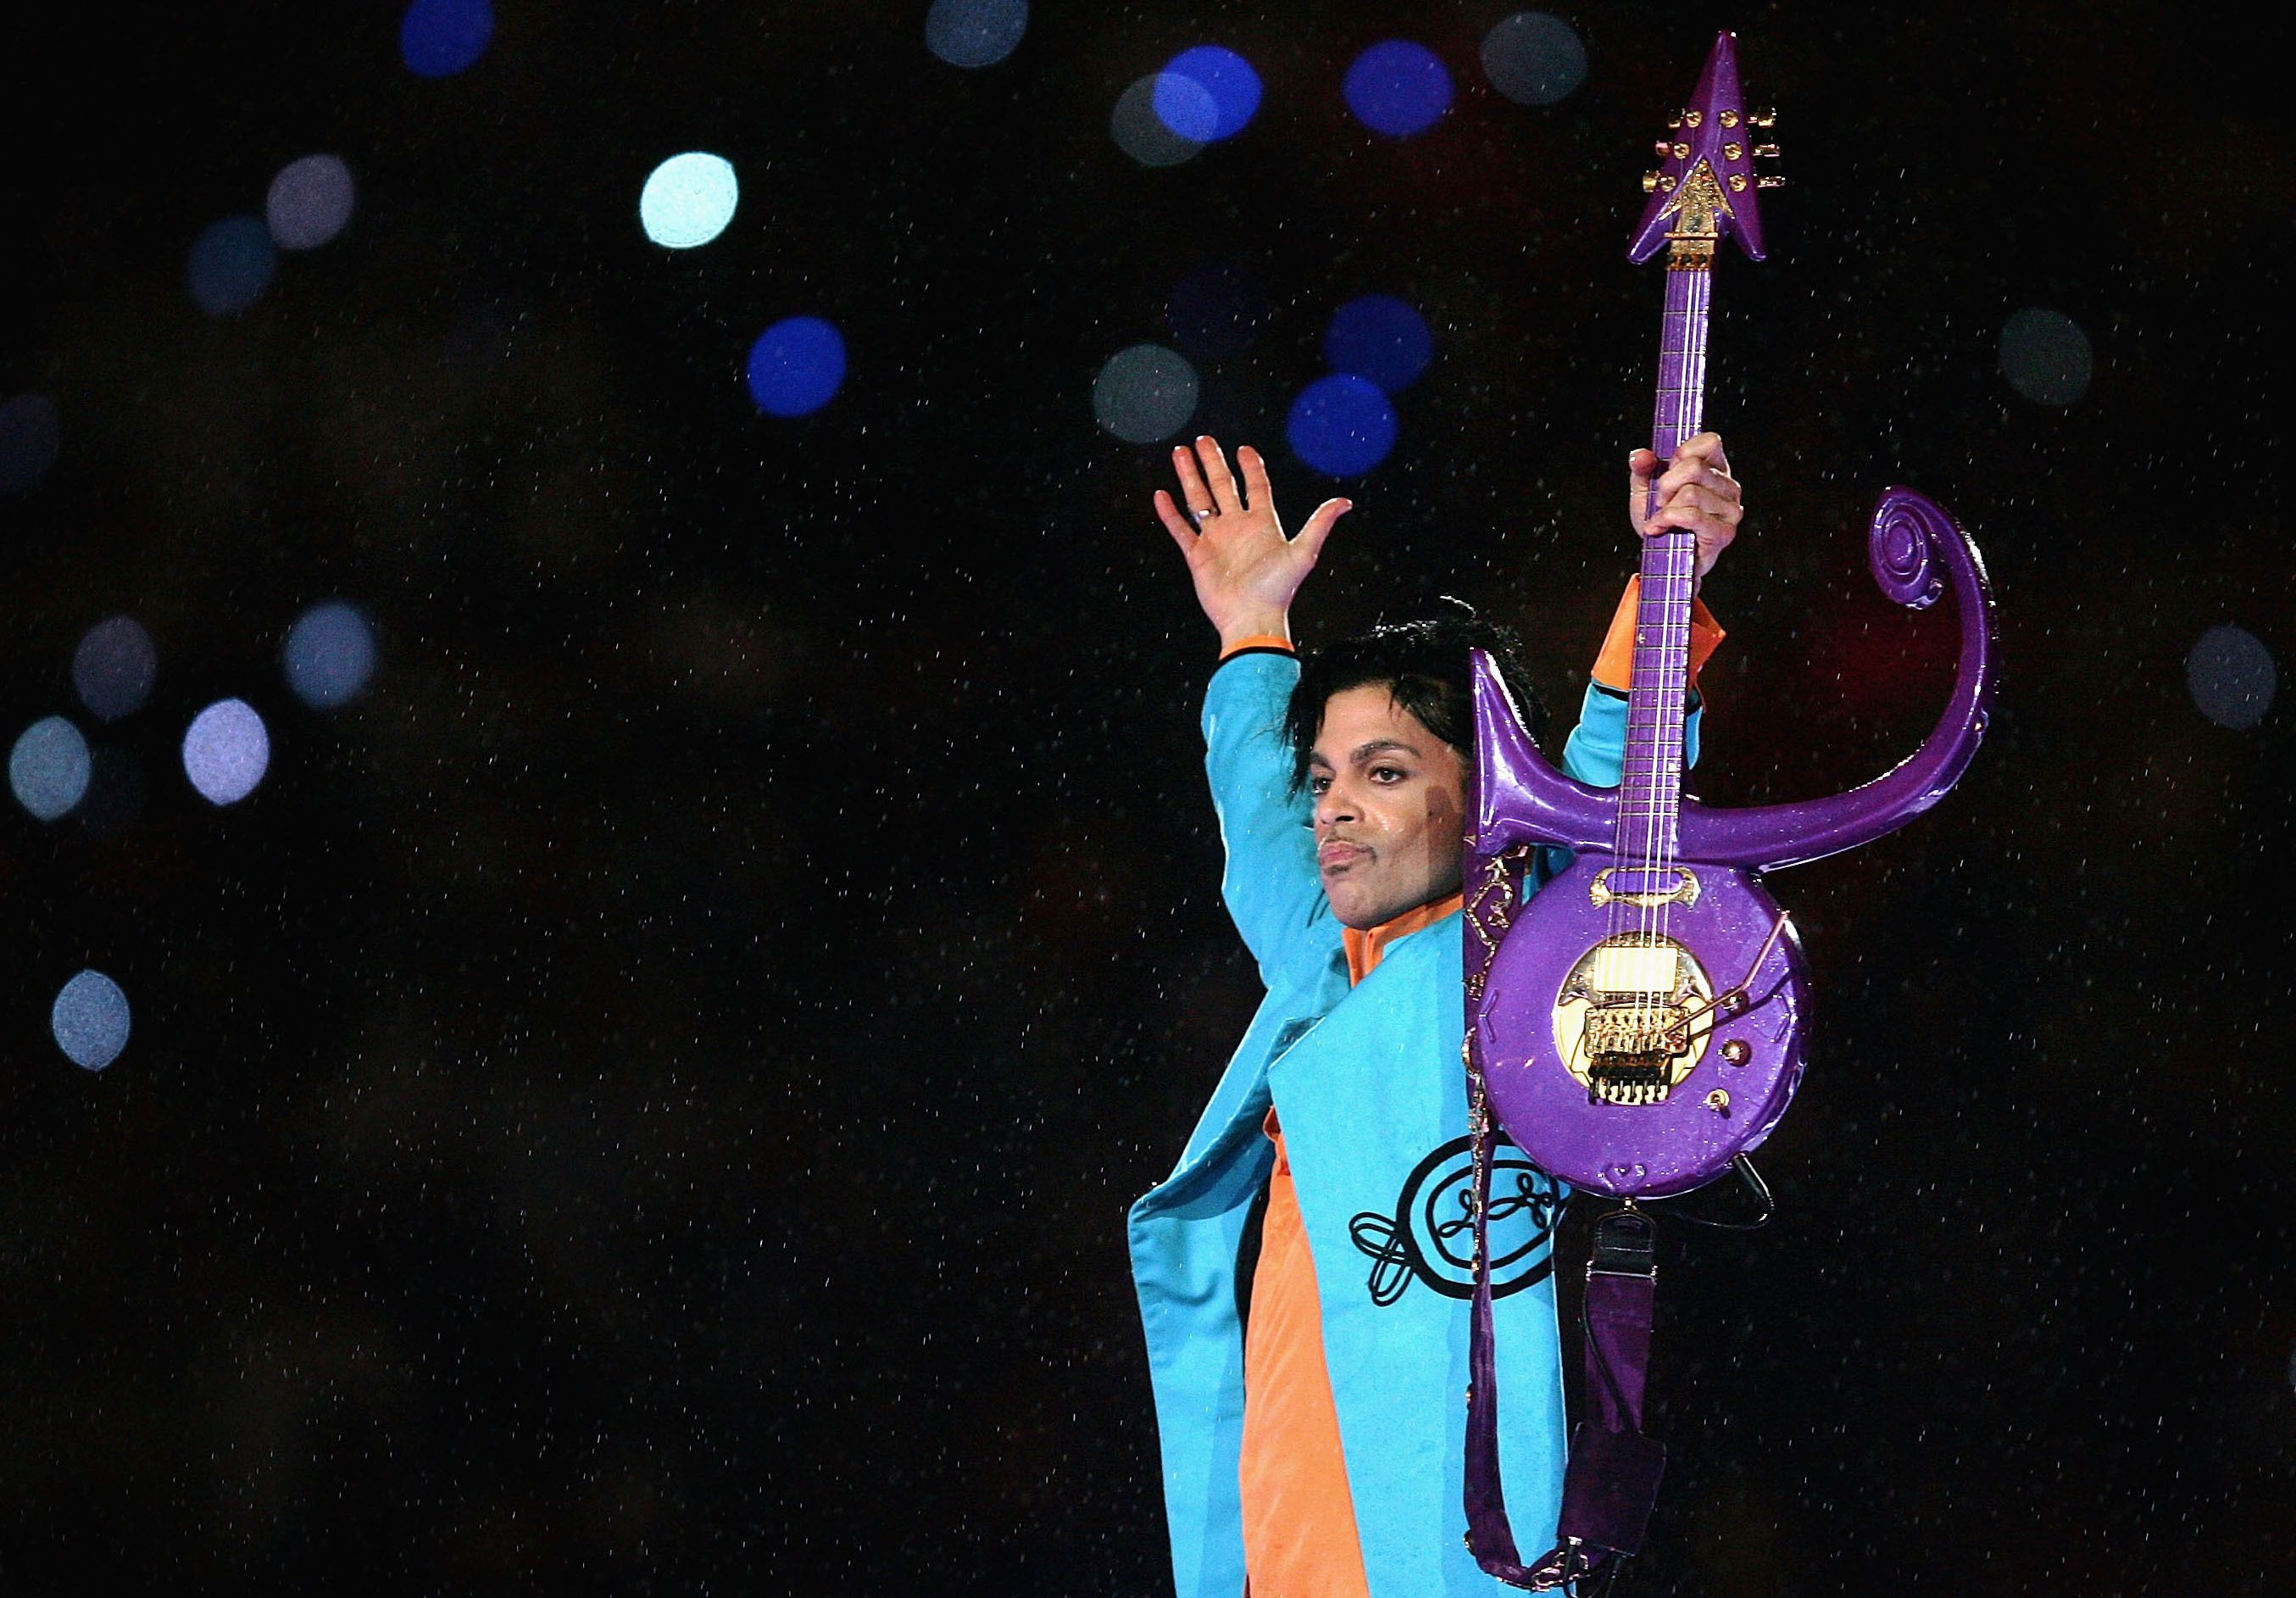 Purple Rebbe:  Prince onstage in the 2007 Superbowl halftime show.